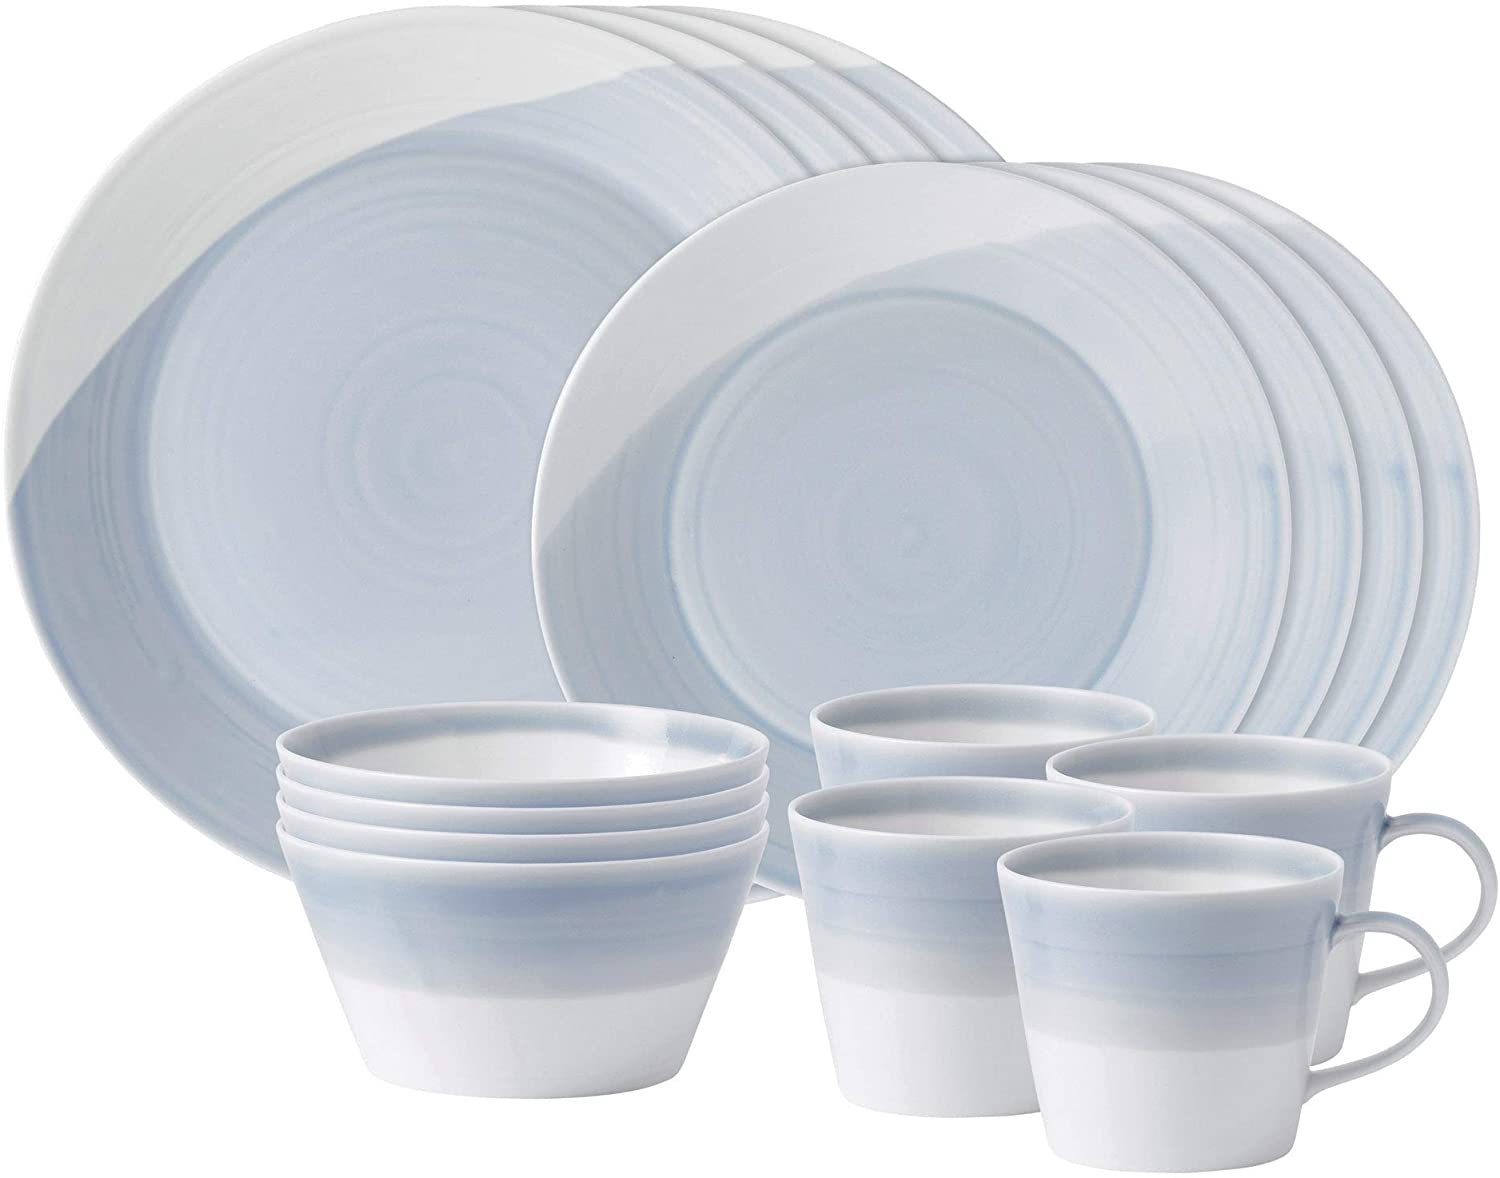 Royal Doulton 1815 Blue Collection Dinner 16-Piece Dinnerware Set